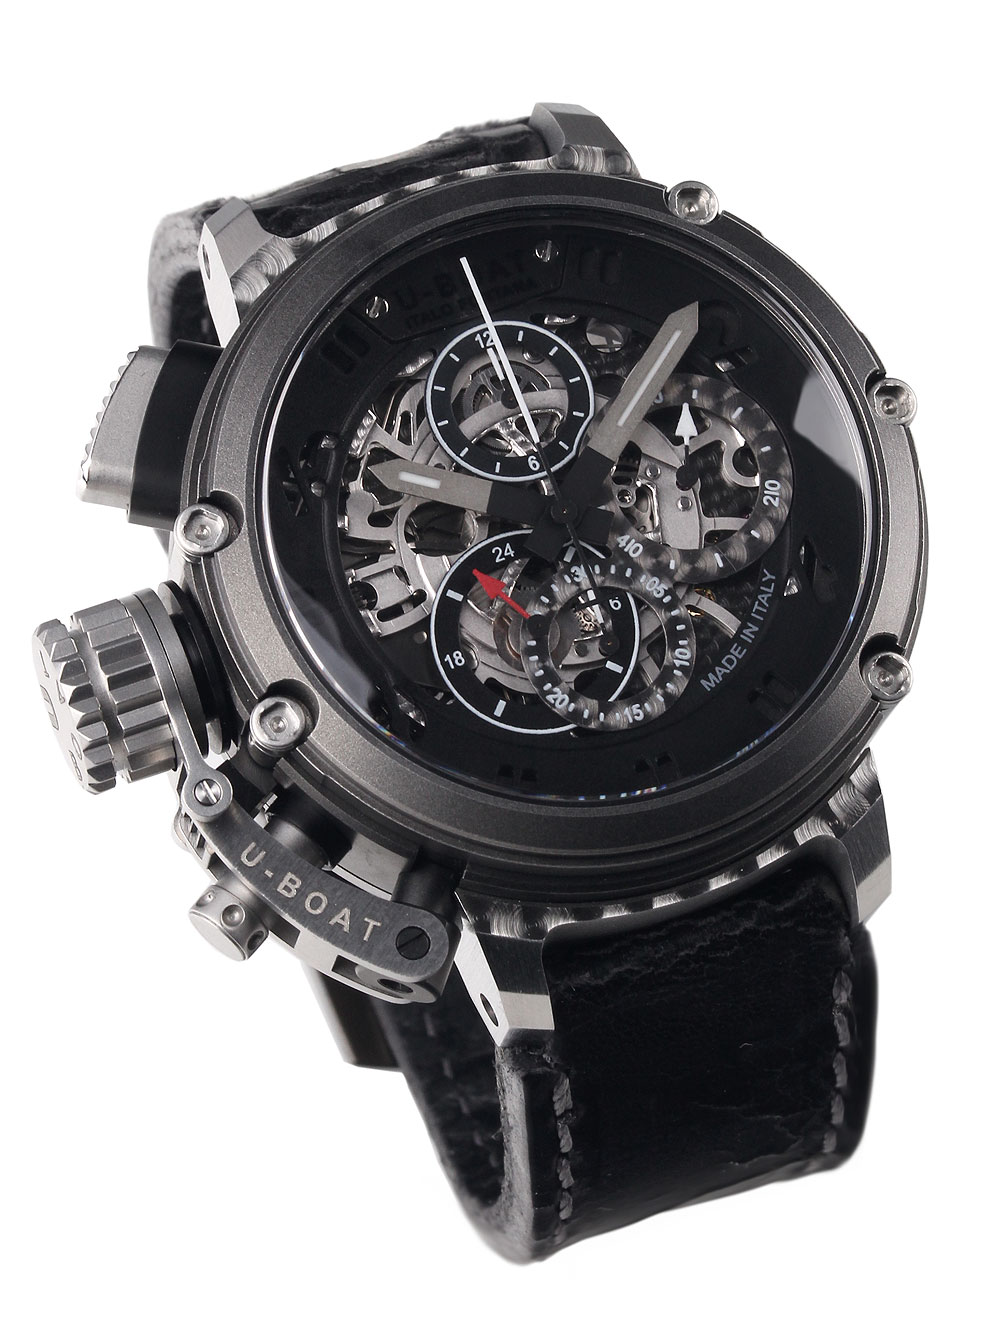 Image of U-Boat 8028 Chimera Skeleton Chronograph Autom. 46mm 100M